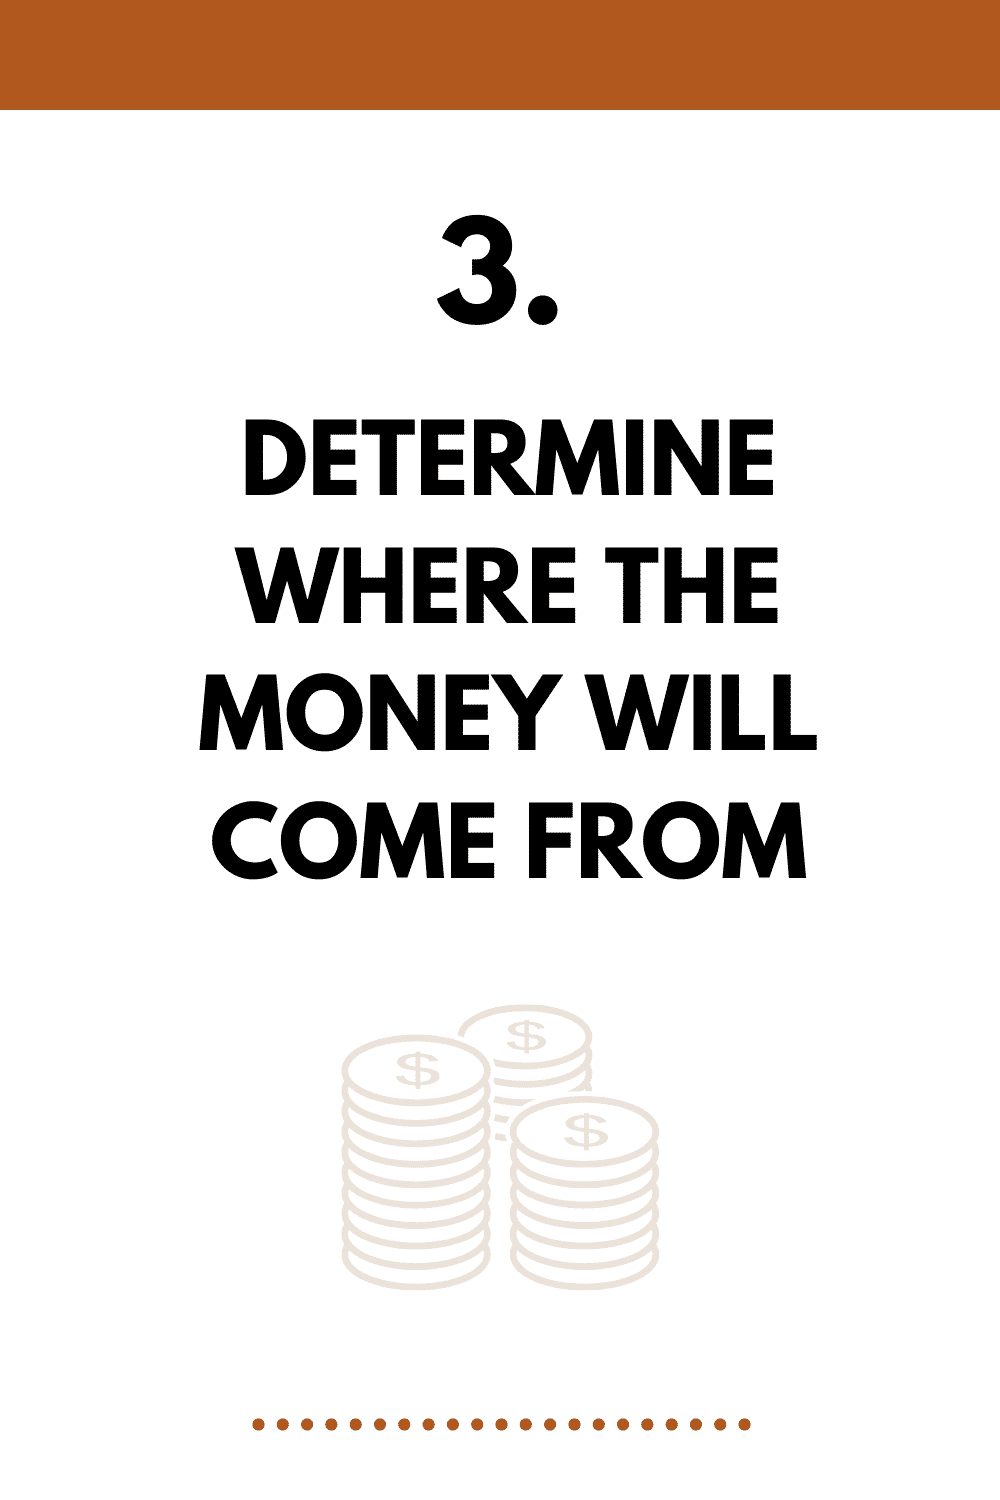 Determine where the money will come from